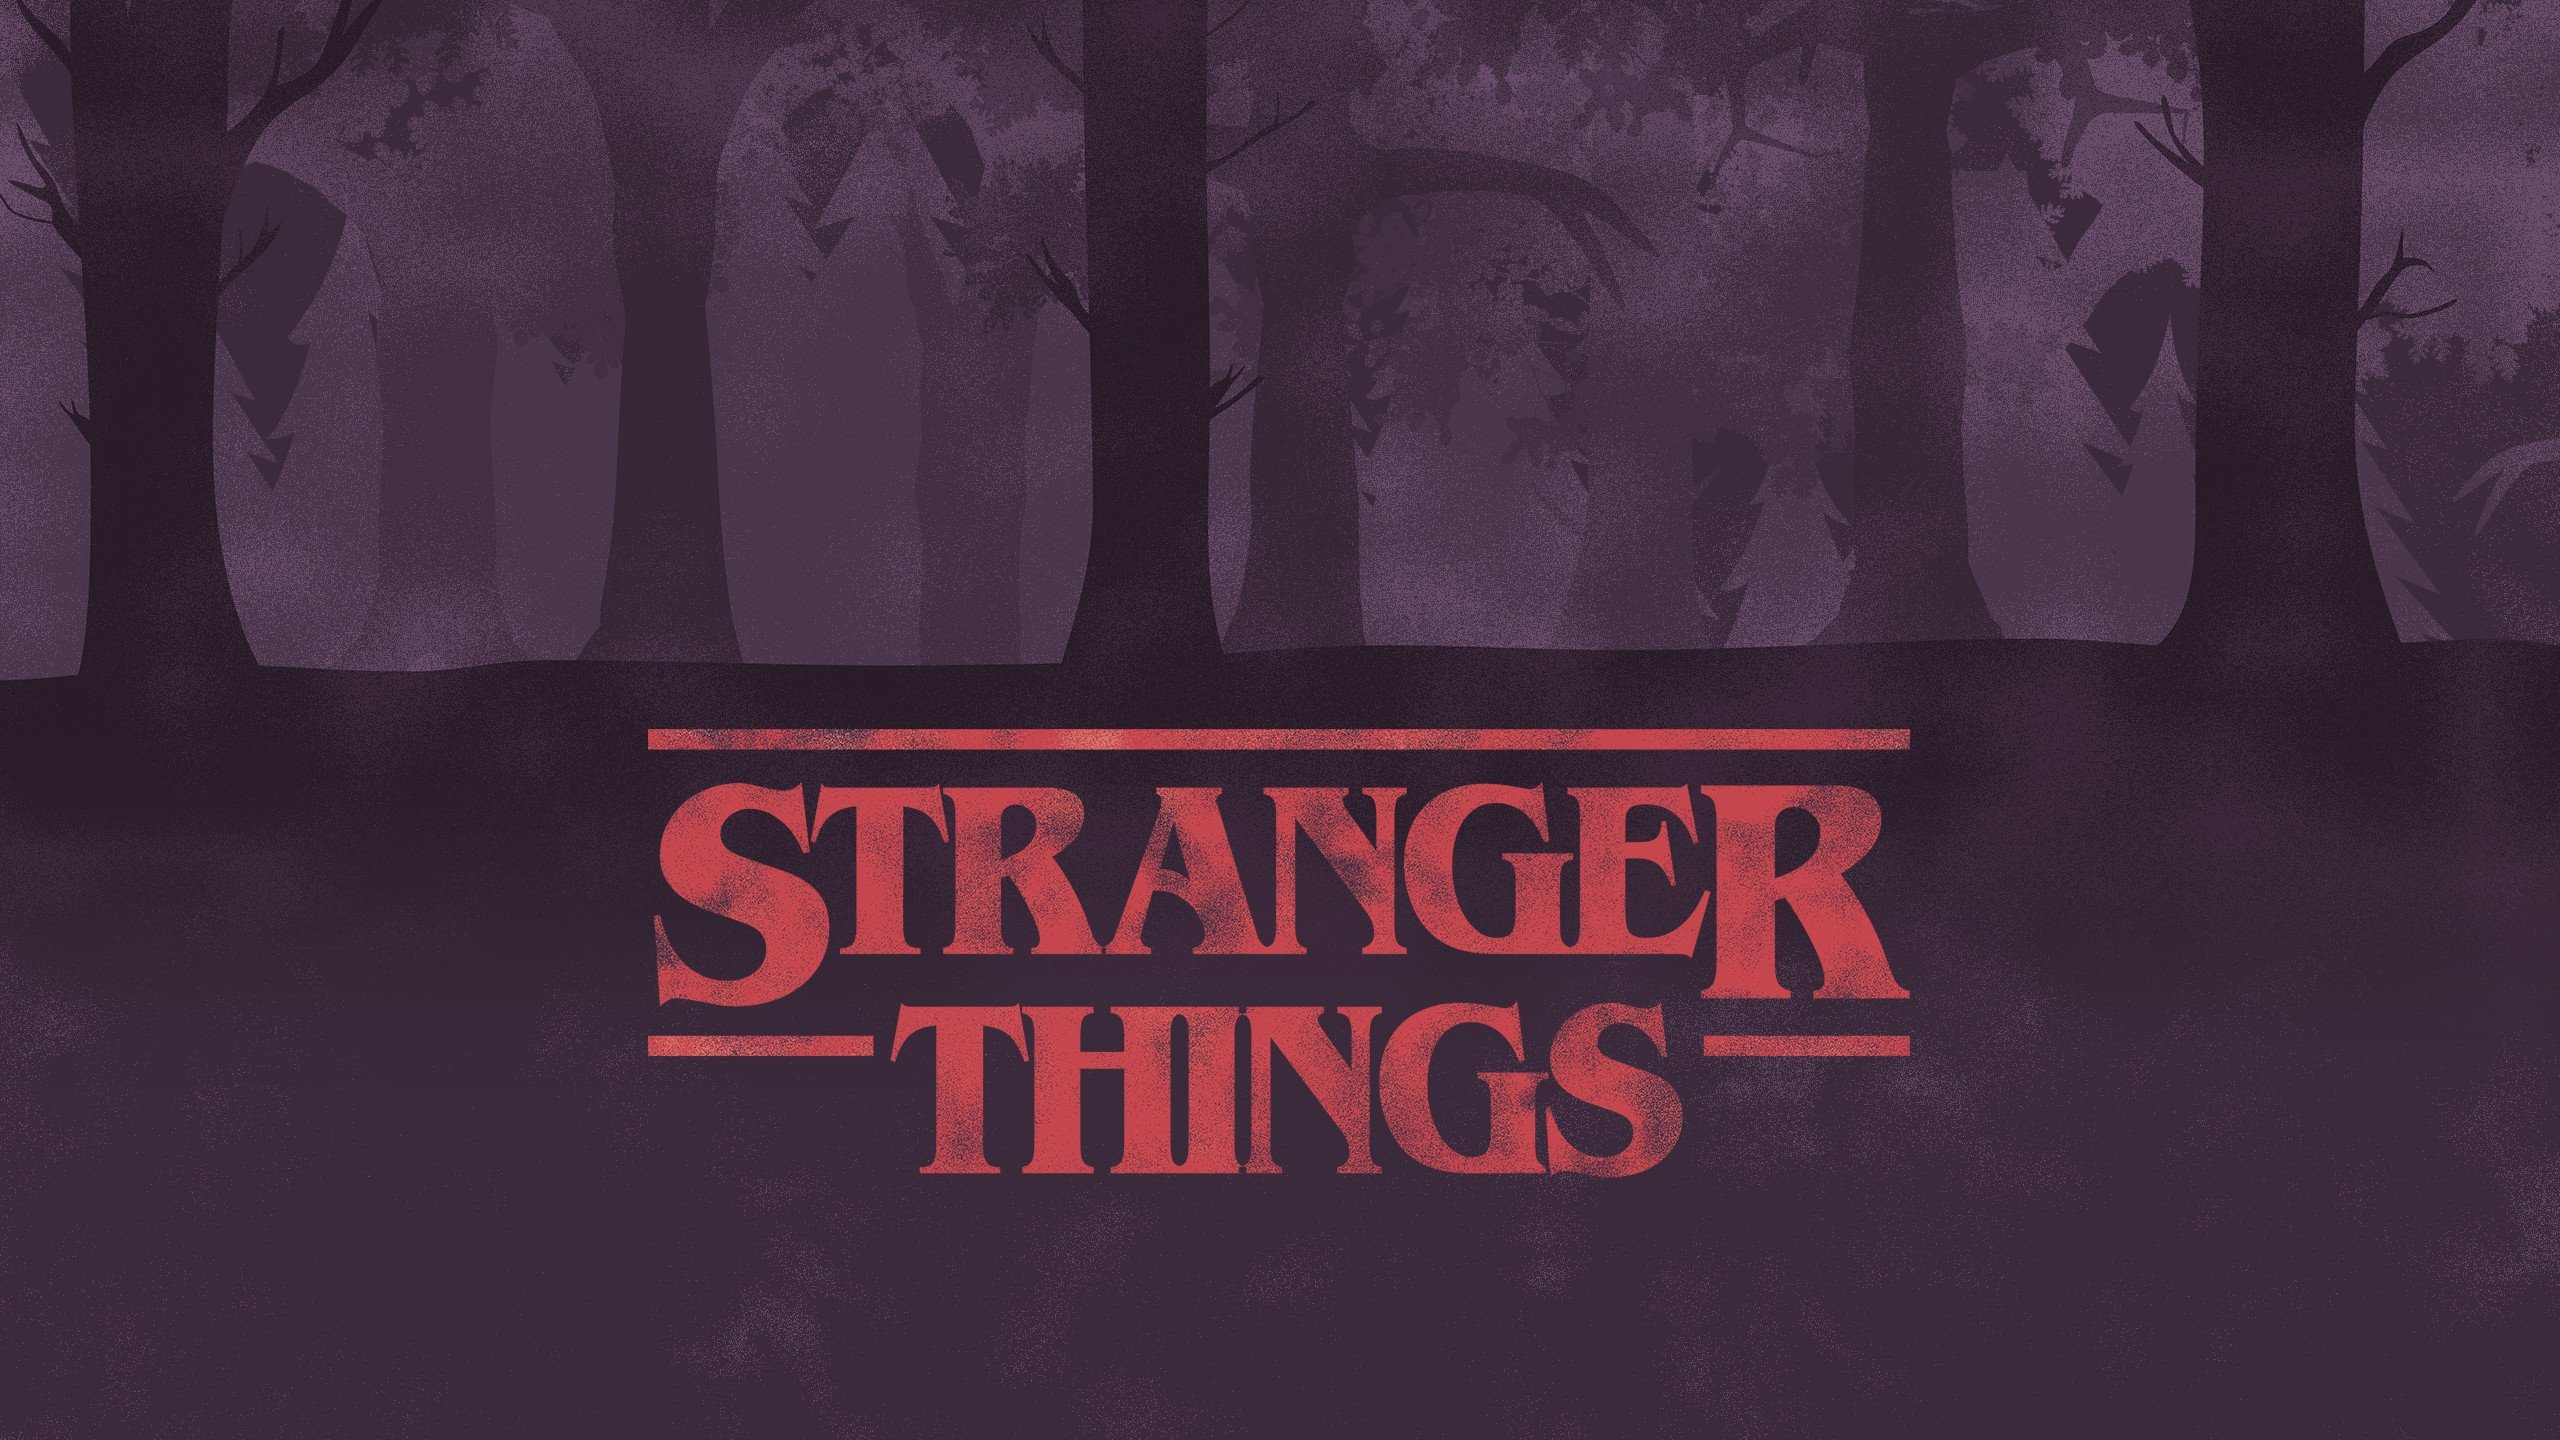 Stranger Things wallpaper Download beautiful 2560x1440